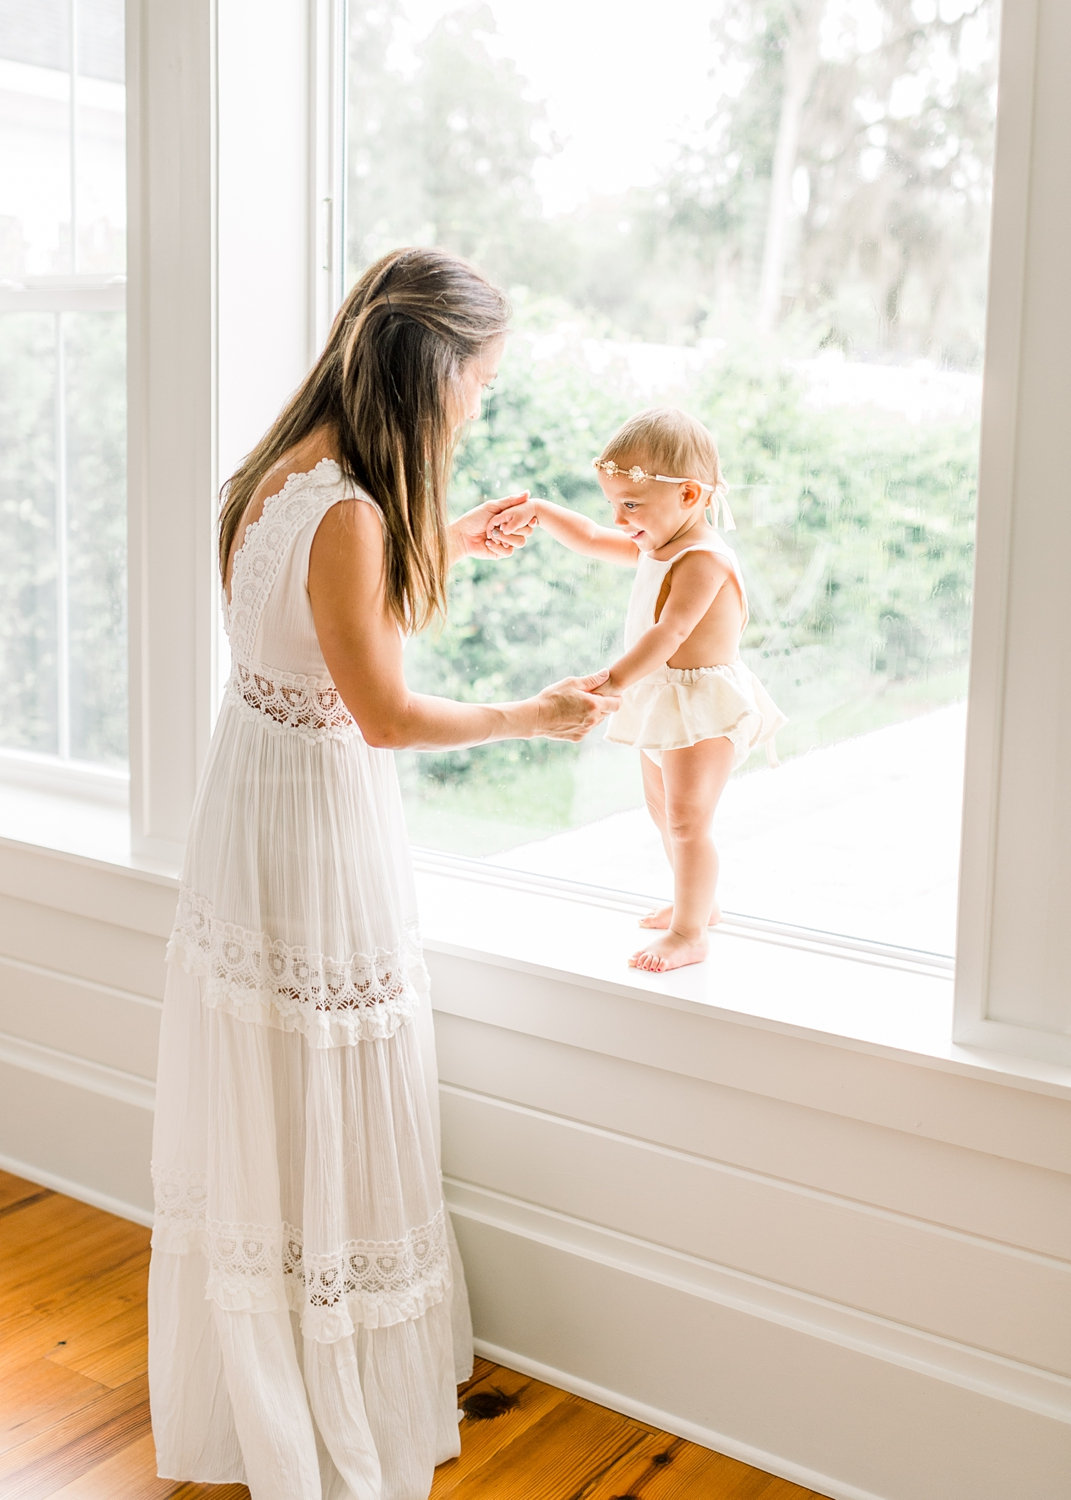 mom and toddler daughter standing together, holding hands, window portraiture, Rya Duncklee Photos